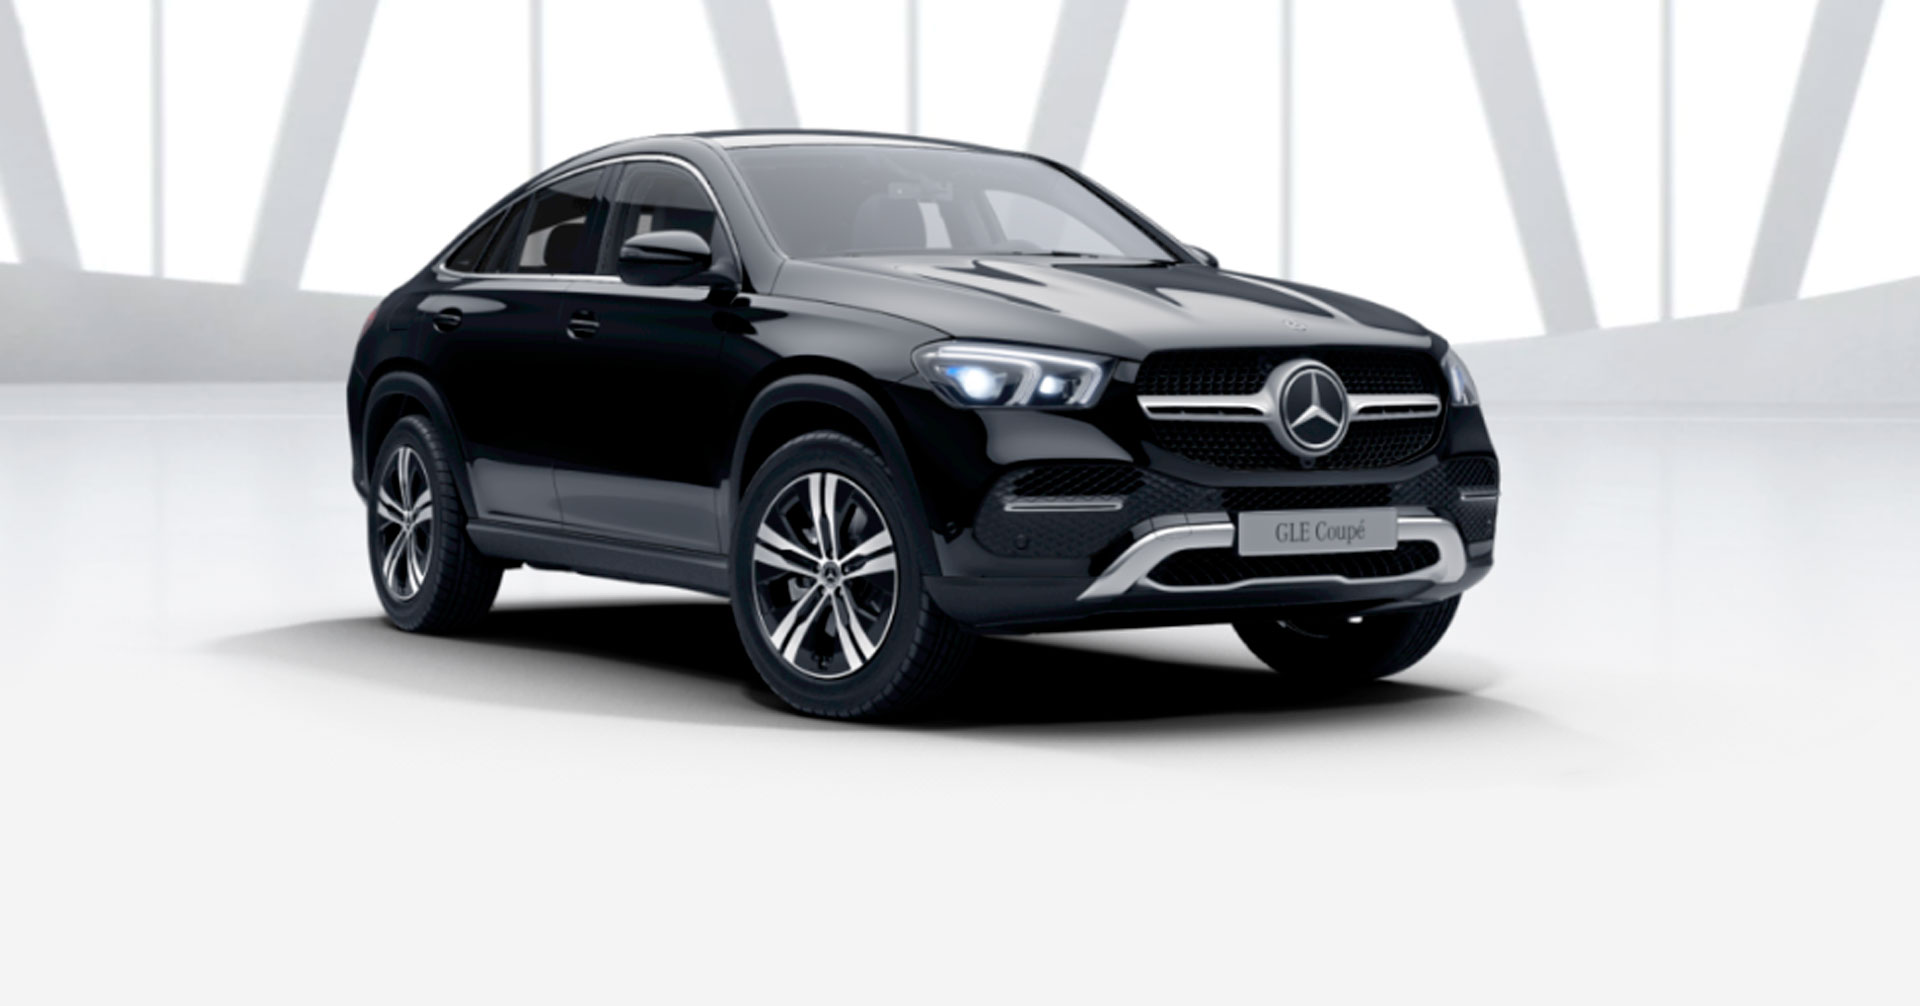 Mercedes-Benz GLE Coupe 0152632067